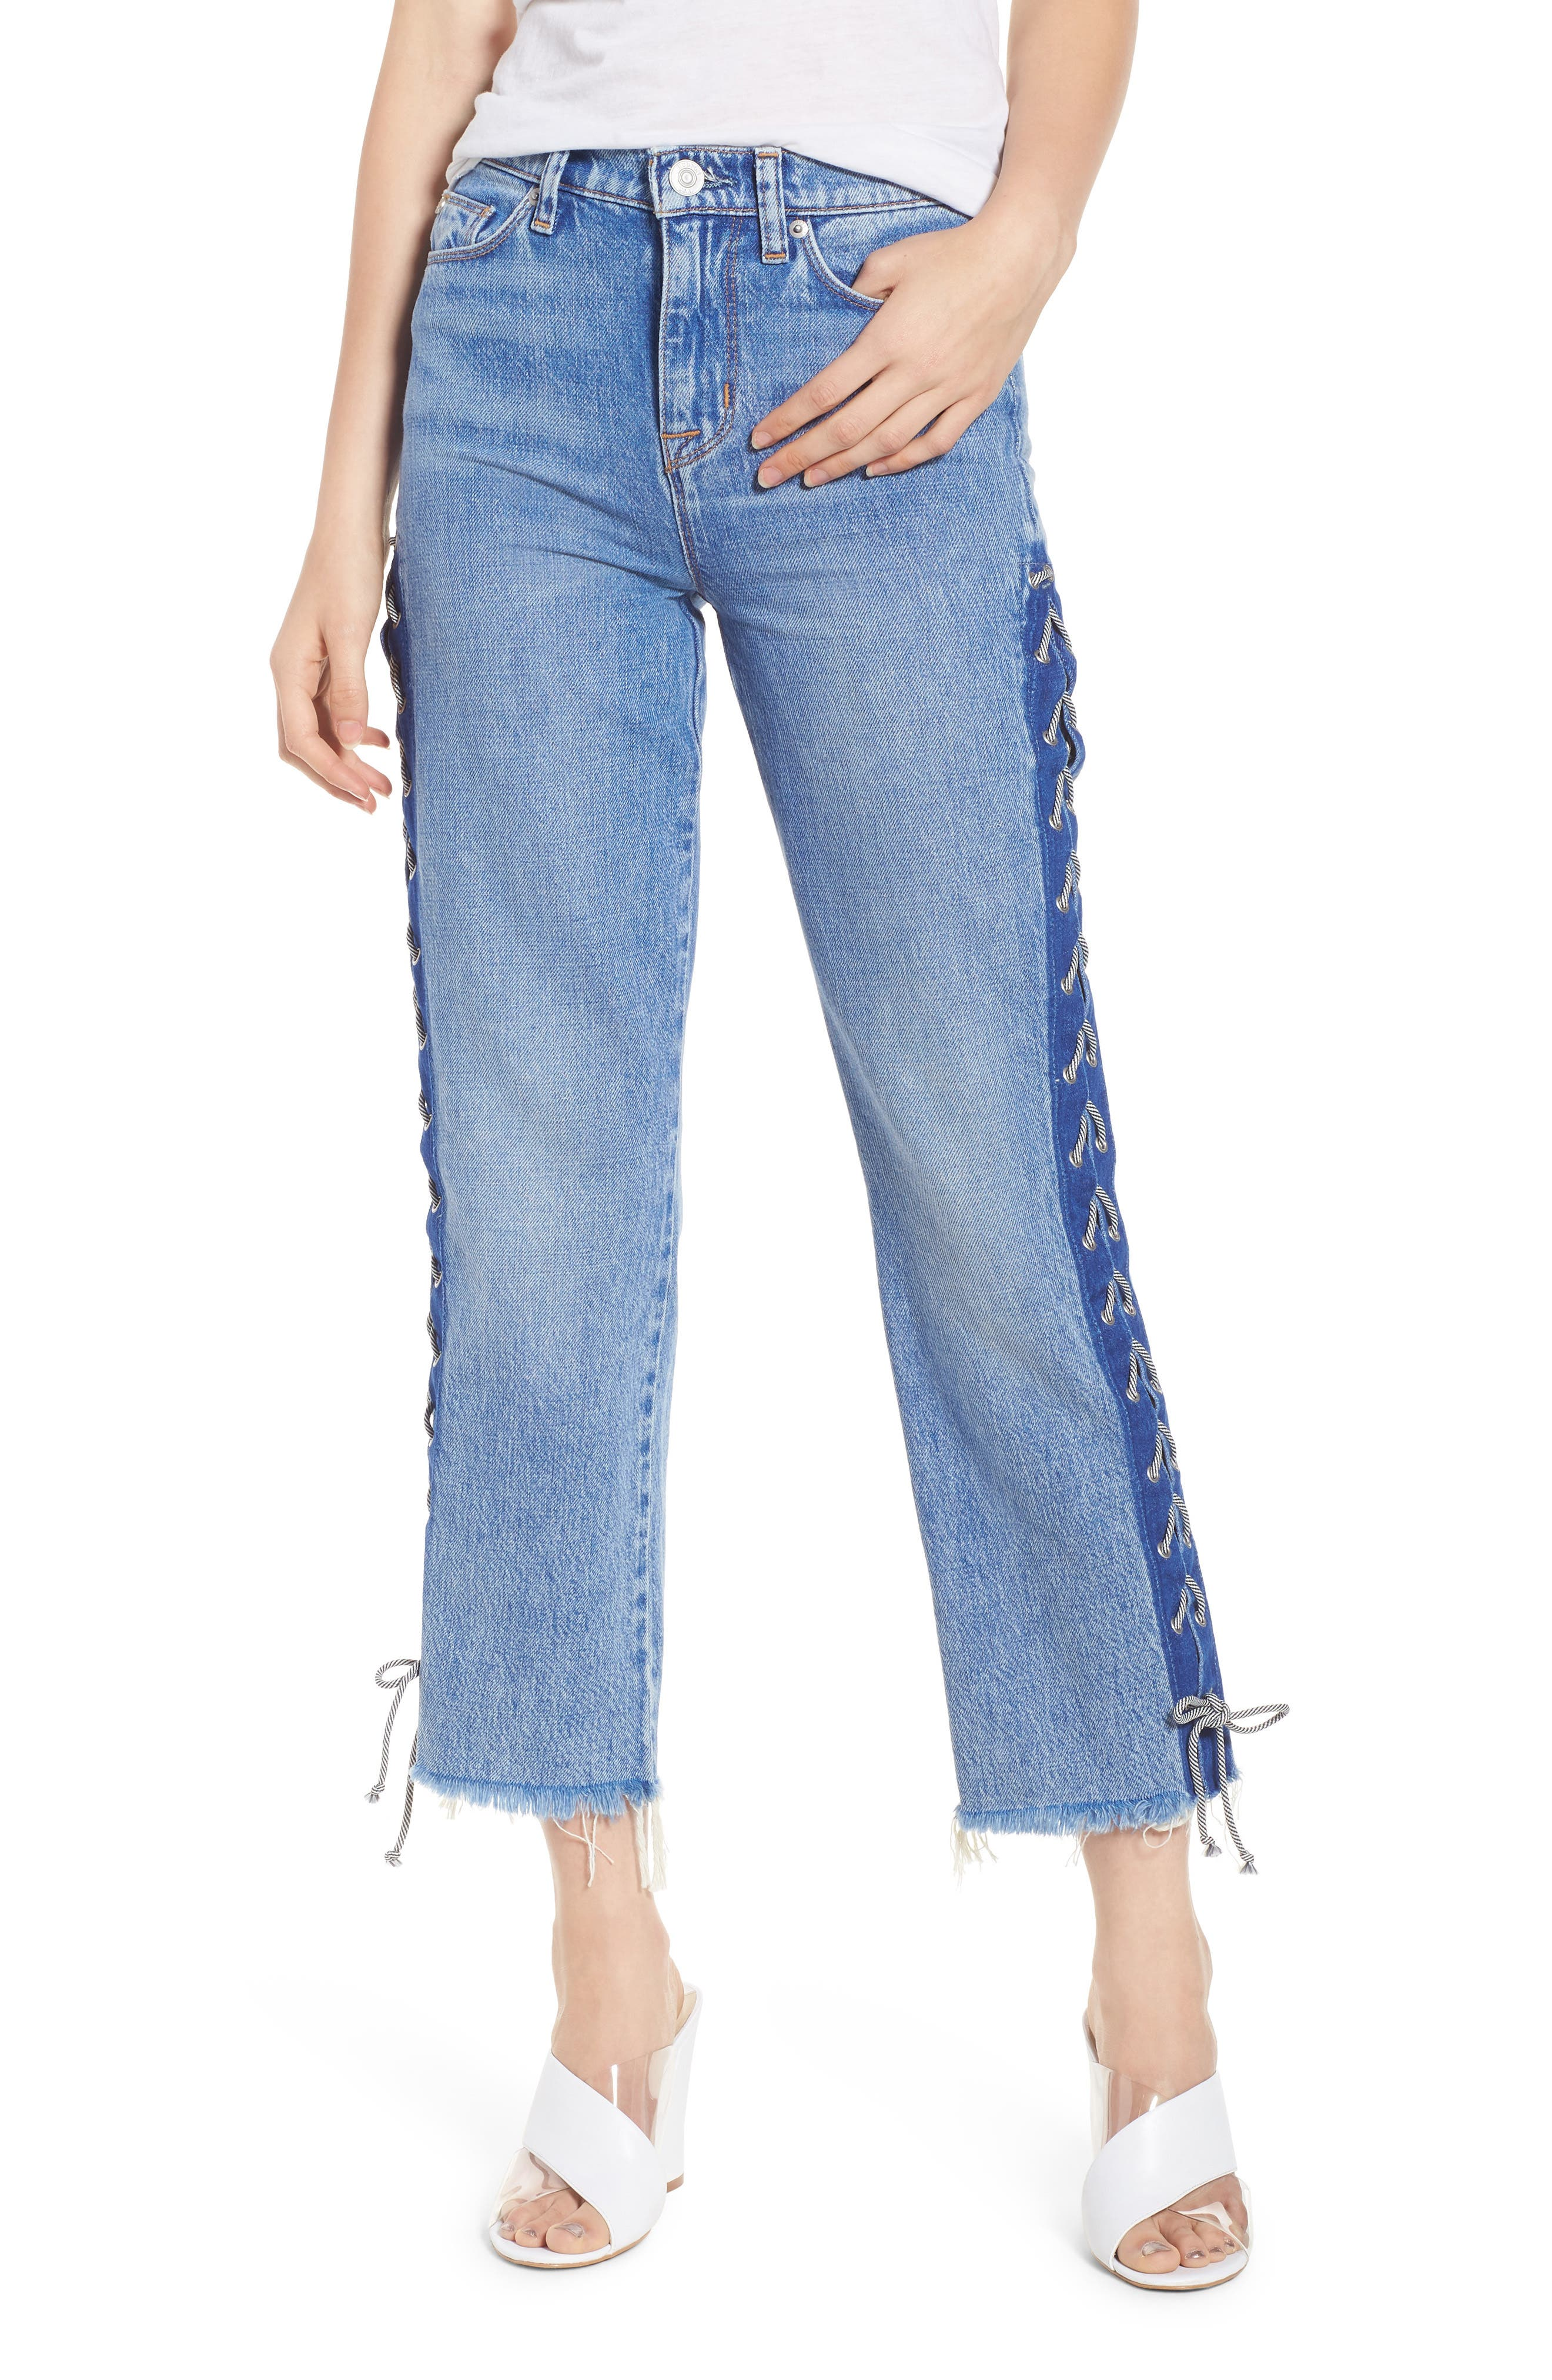 Zoeey High Waist Crop Straight Leg Jeans,                             Main thumbnail 1, color,                             High Spirits